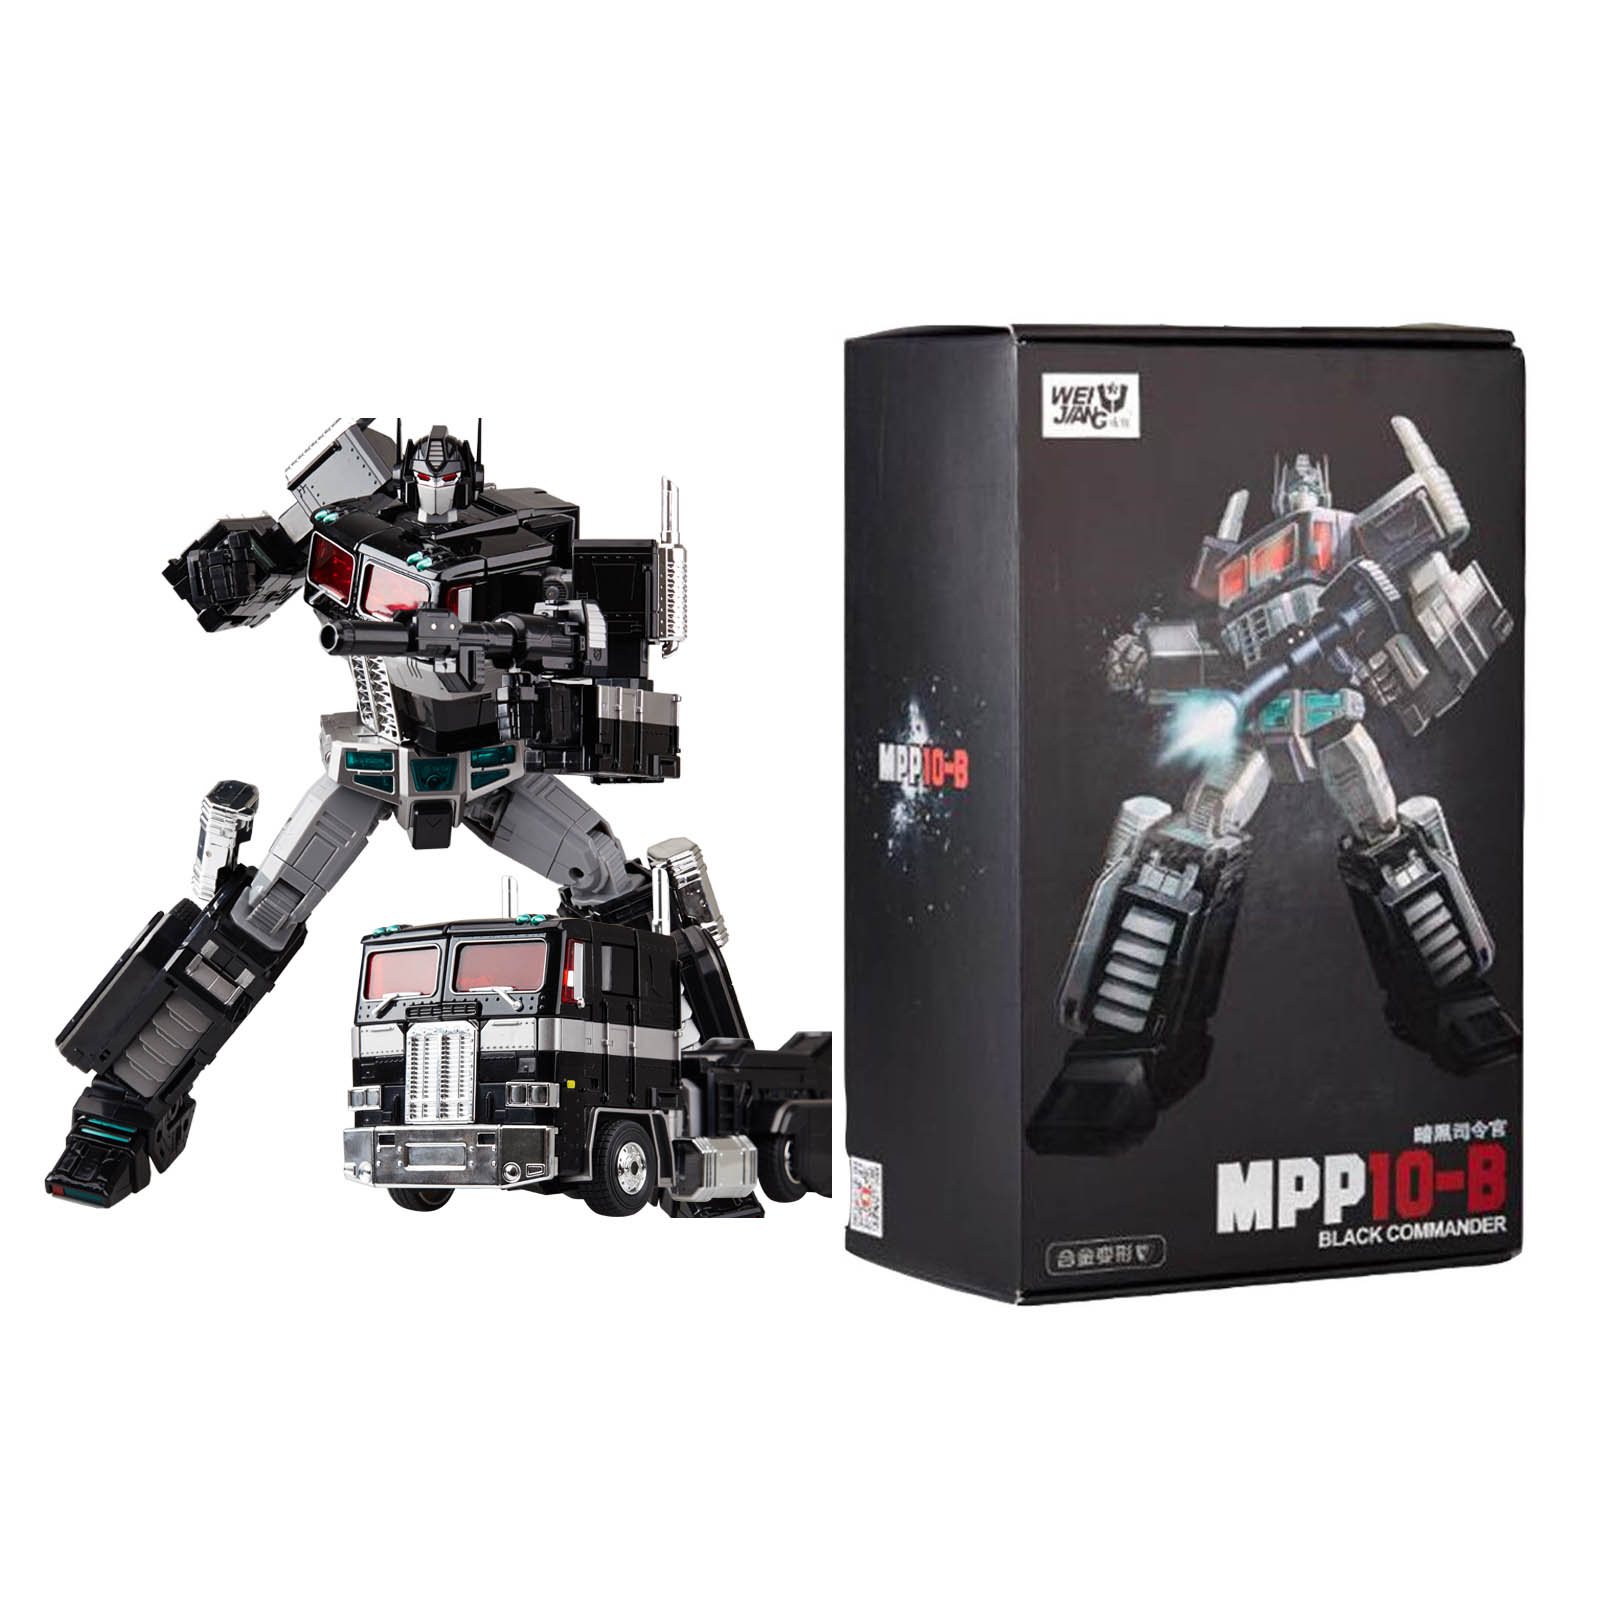 New Deformation toys version MPP10B dark version commander optimus prime toy